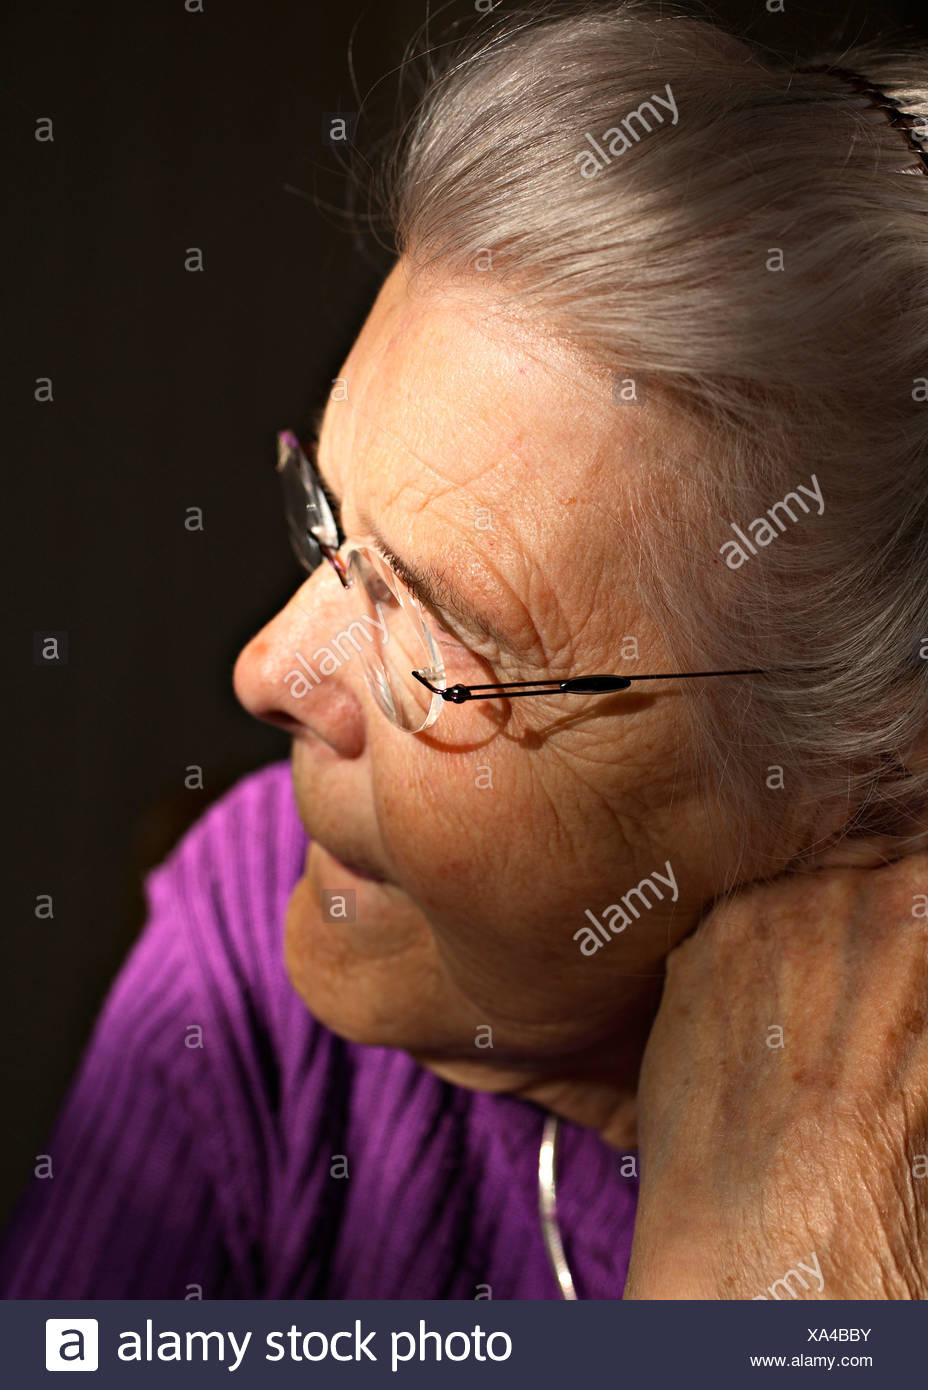 Close-up profile of an elderly woman wearing glasses as she looks away over black background - Stock Image